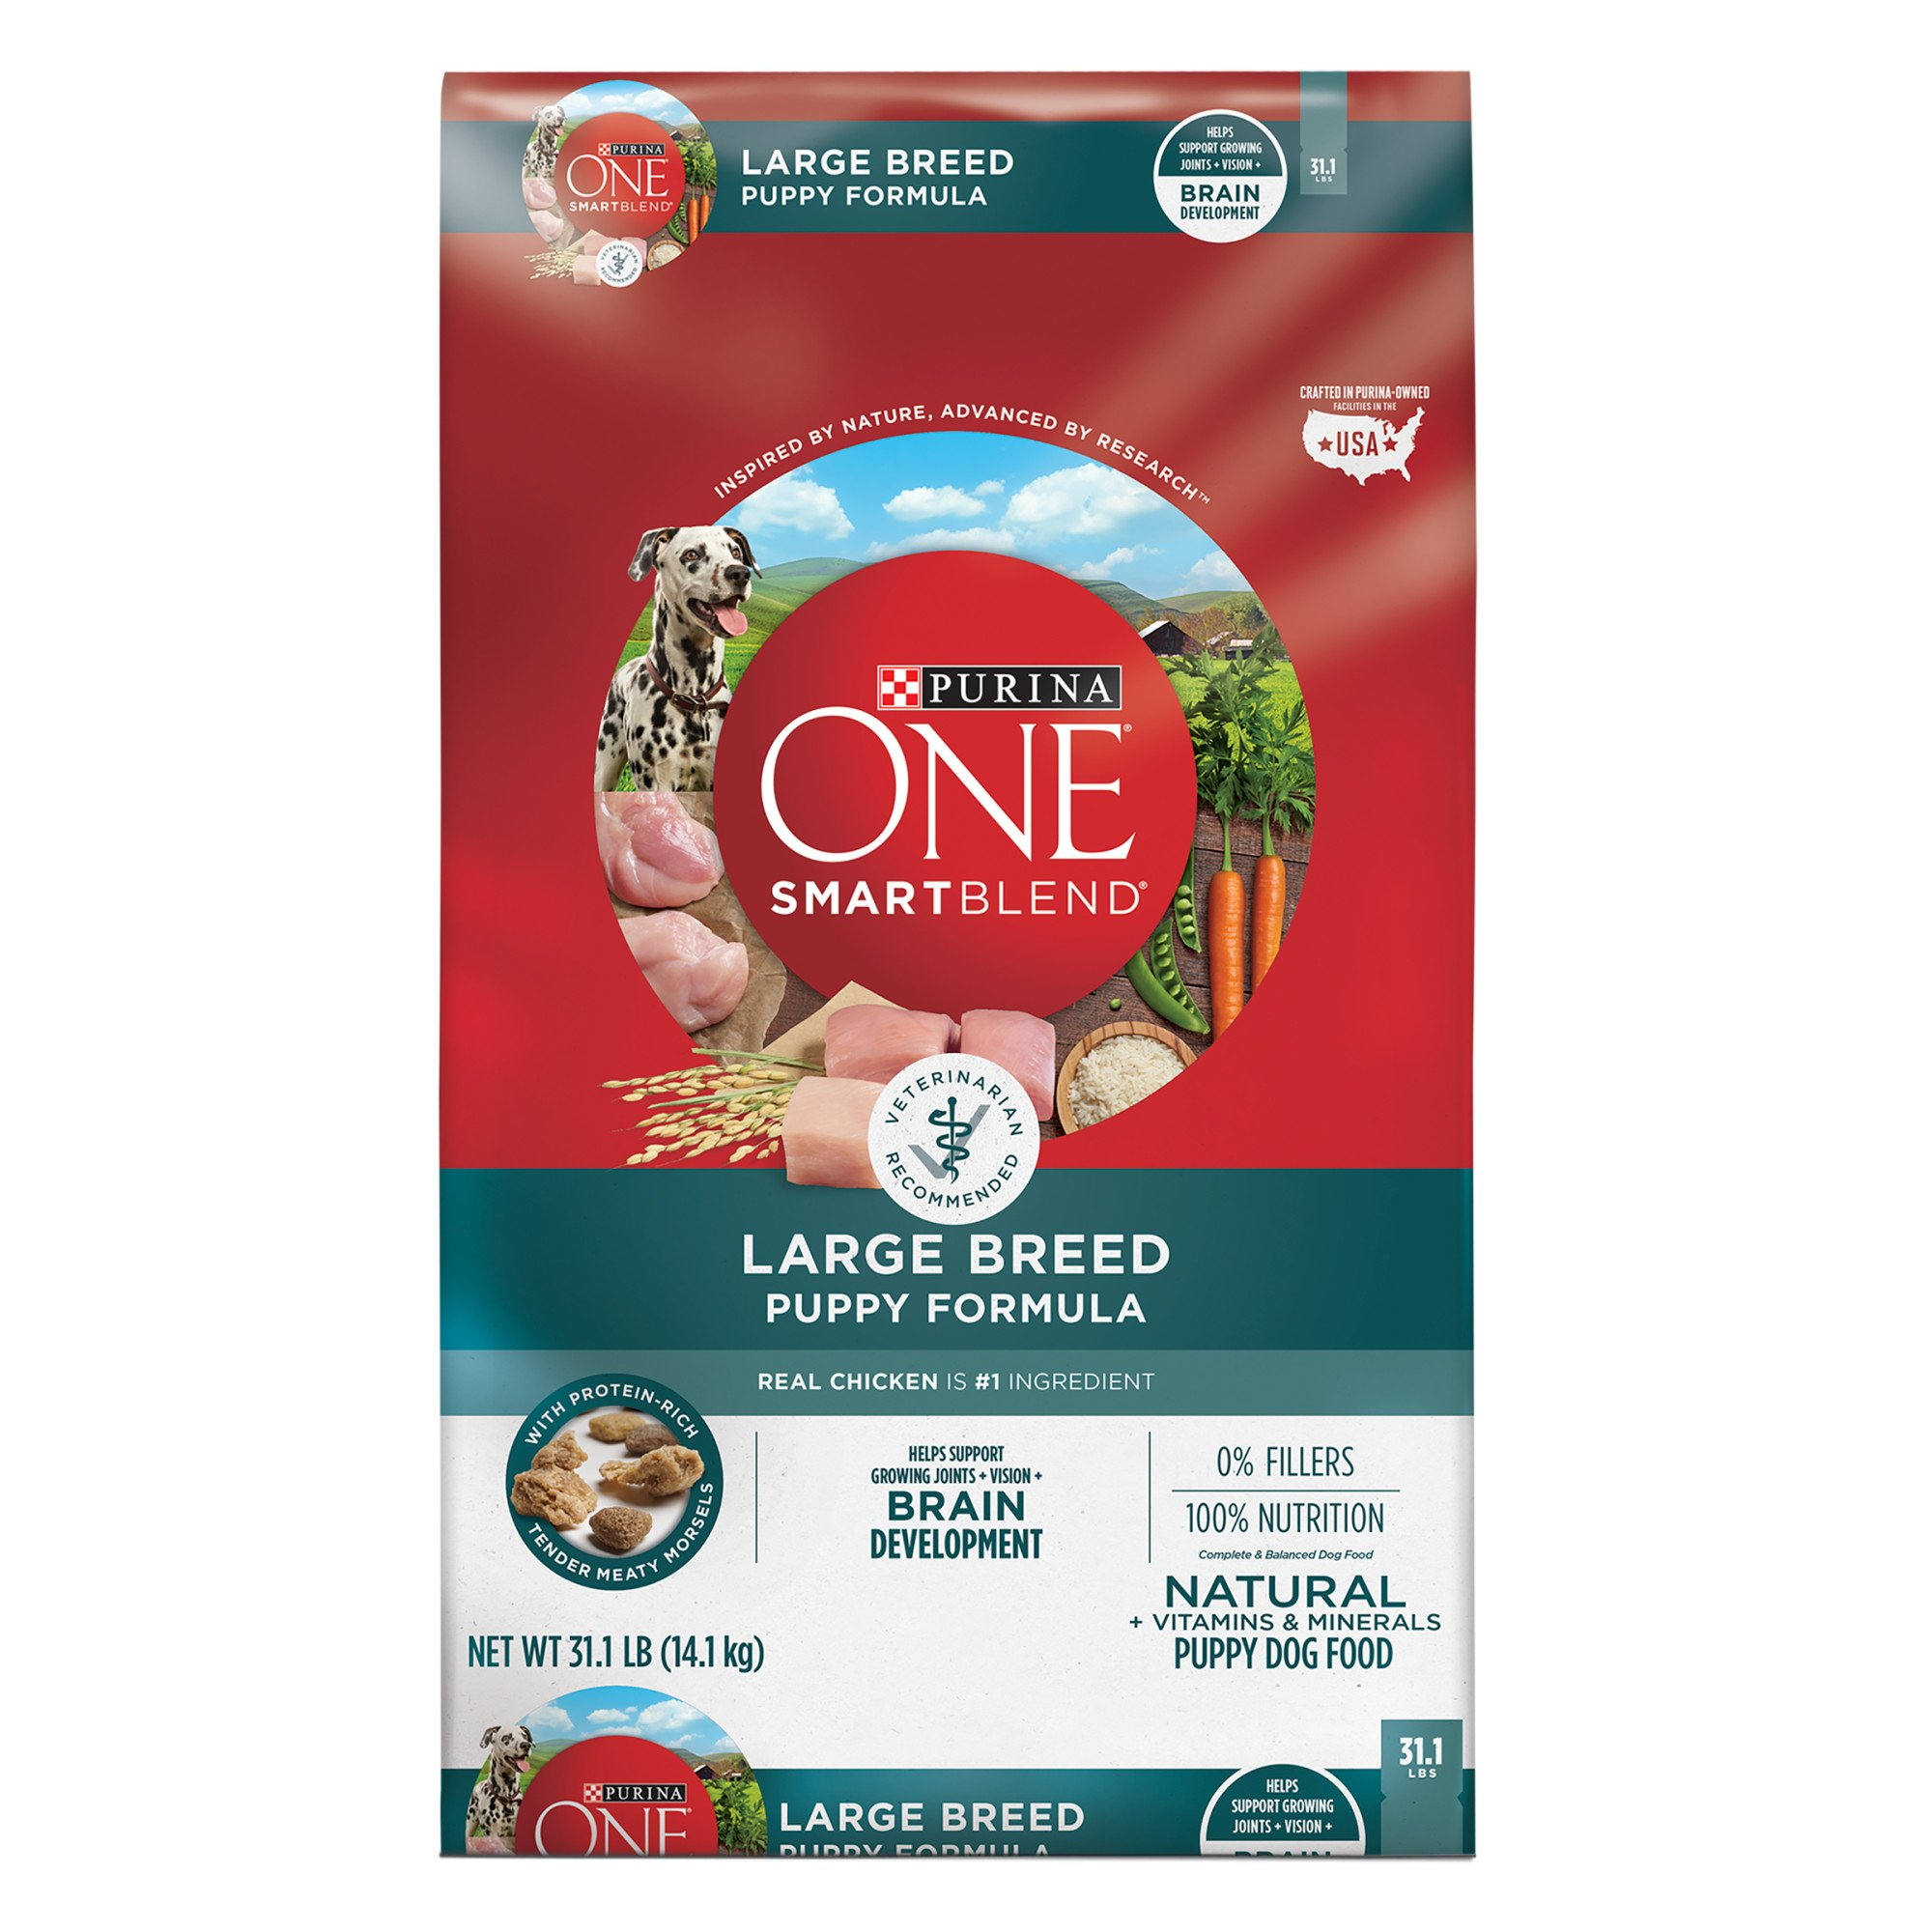 Purina ONE Large Breed Puppy Formula Food